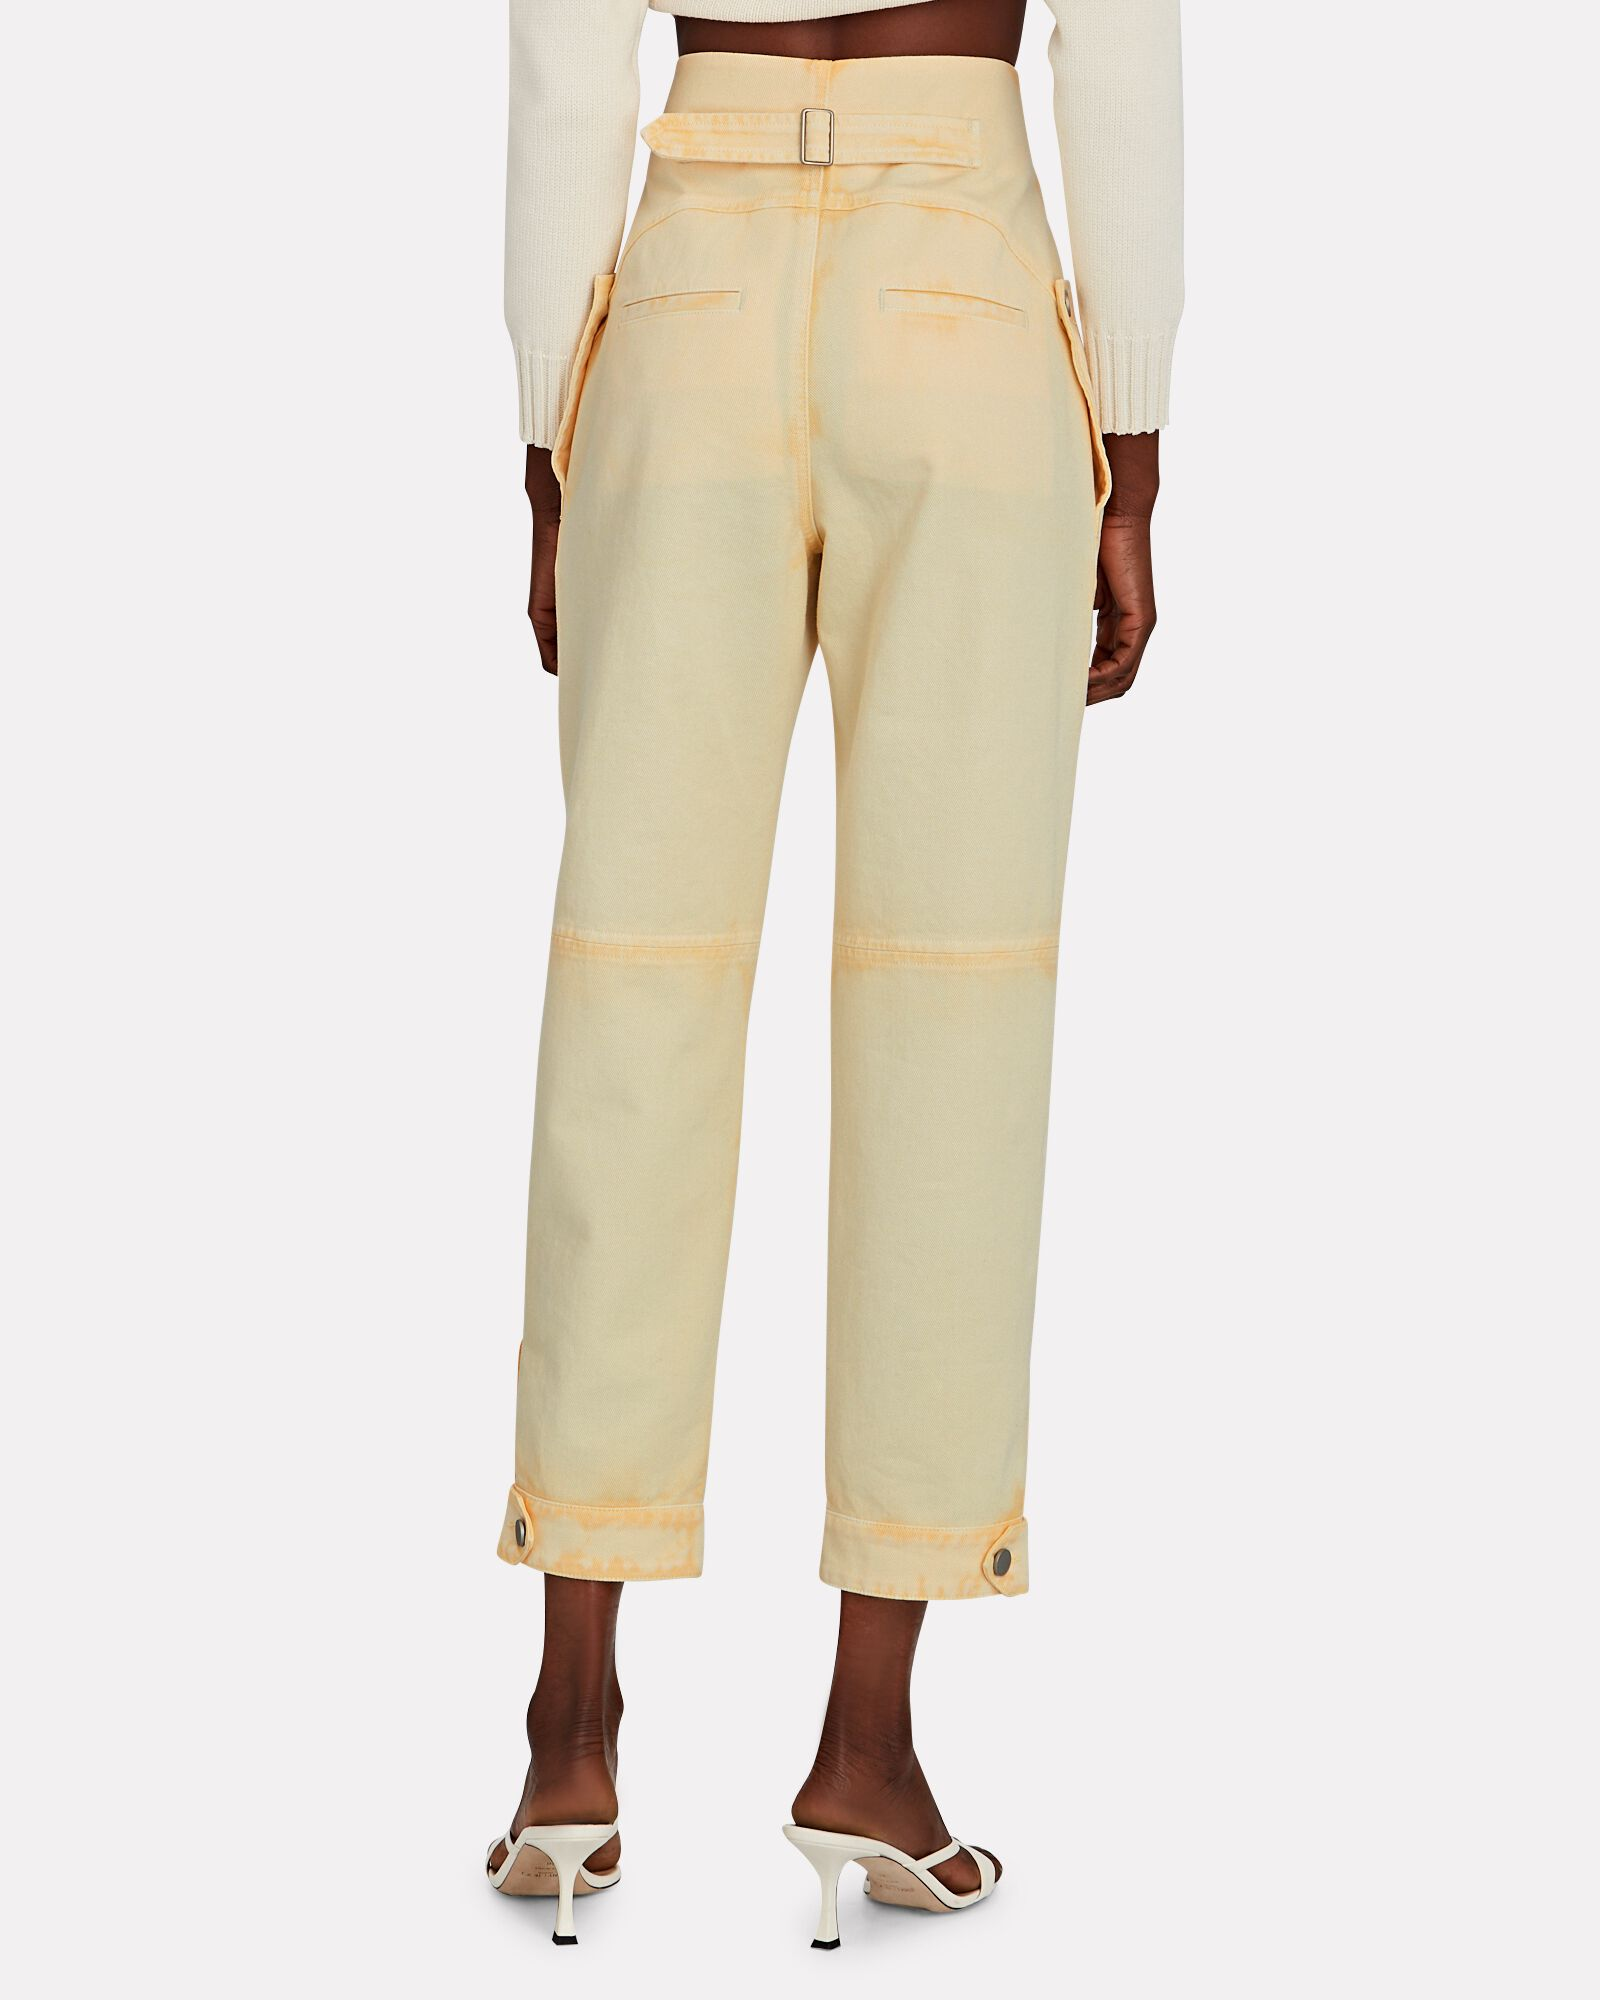 Tie-Dye High-Rise Jeans, YELLOW, hi-res